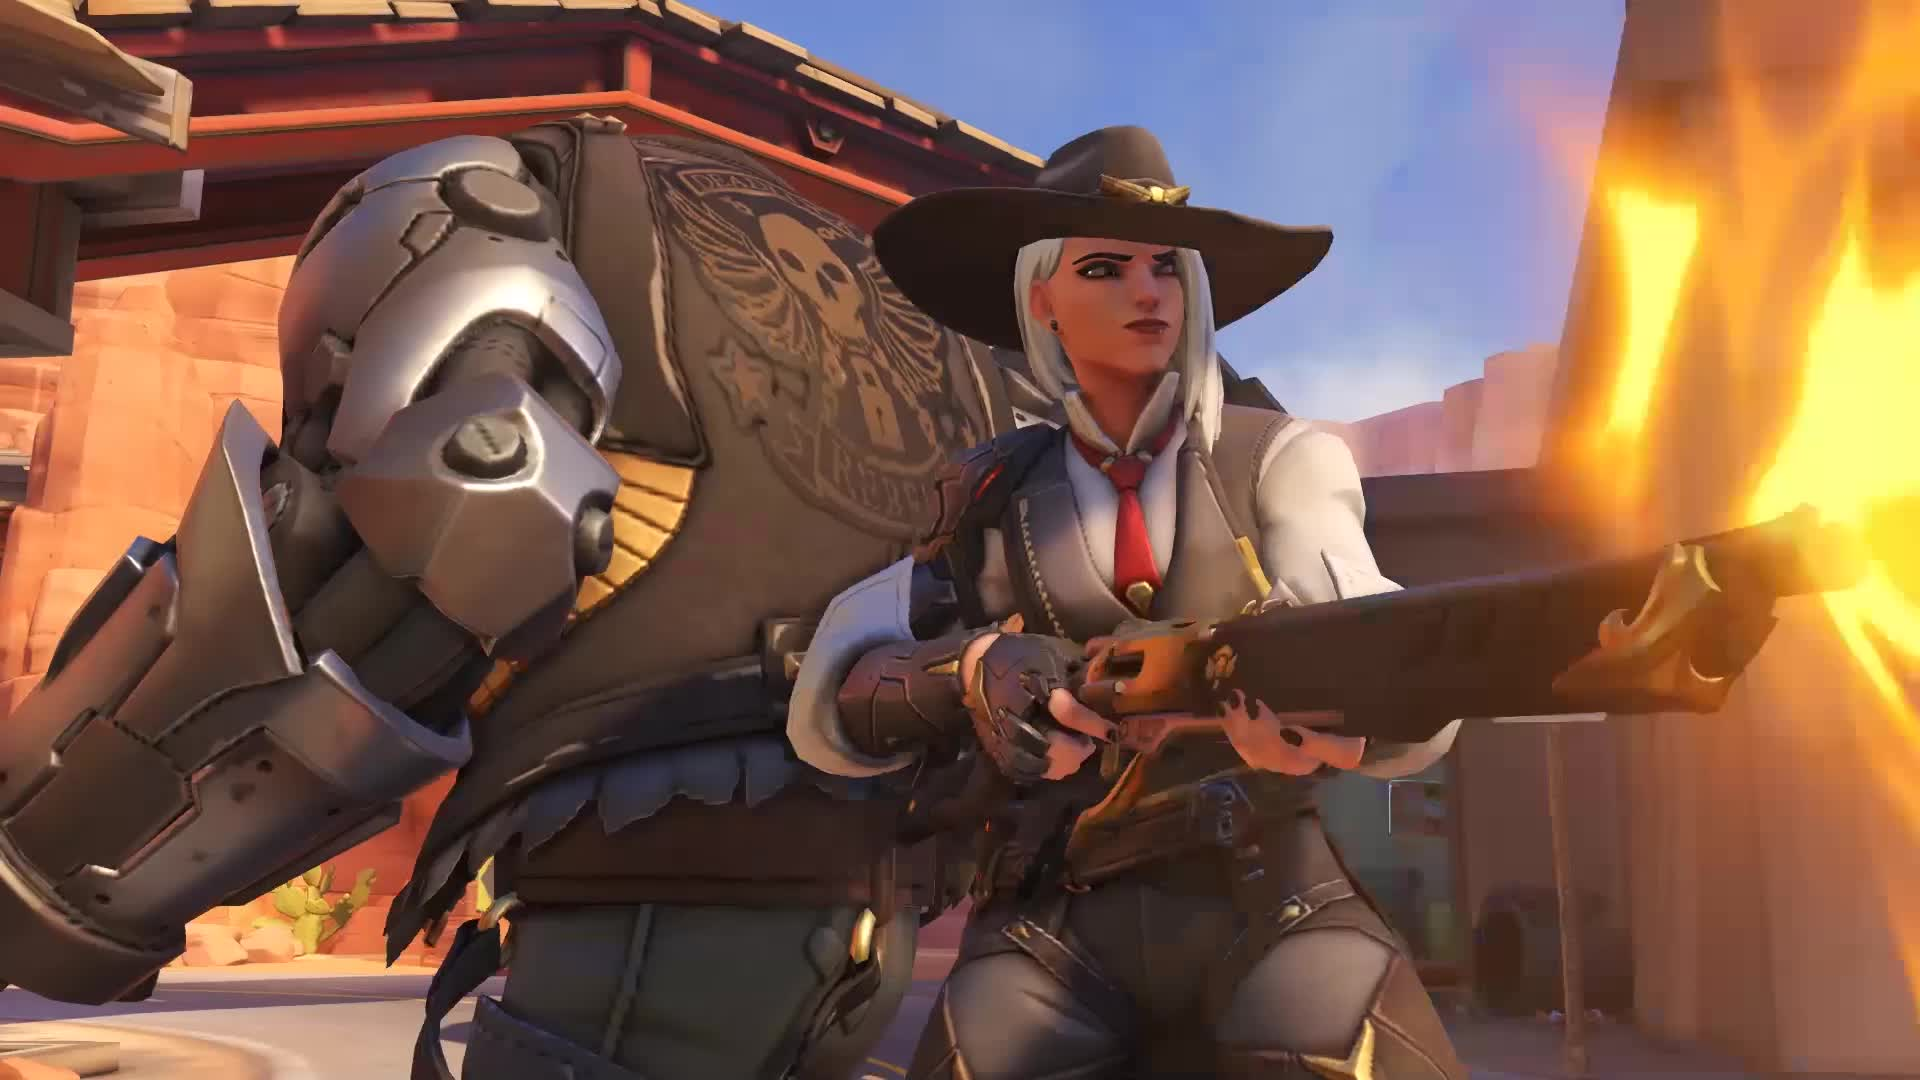 ashe, bob, highlight, overwatch, Ashe and B.O.B. enter Competitive Play! GIFs